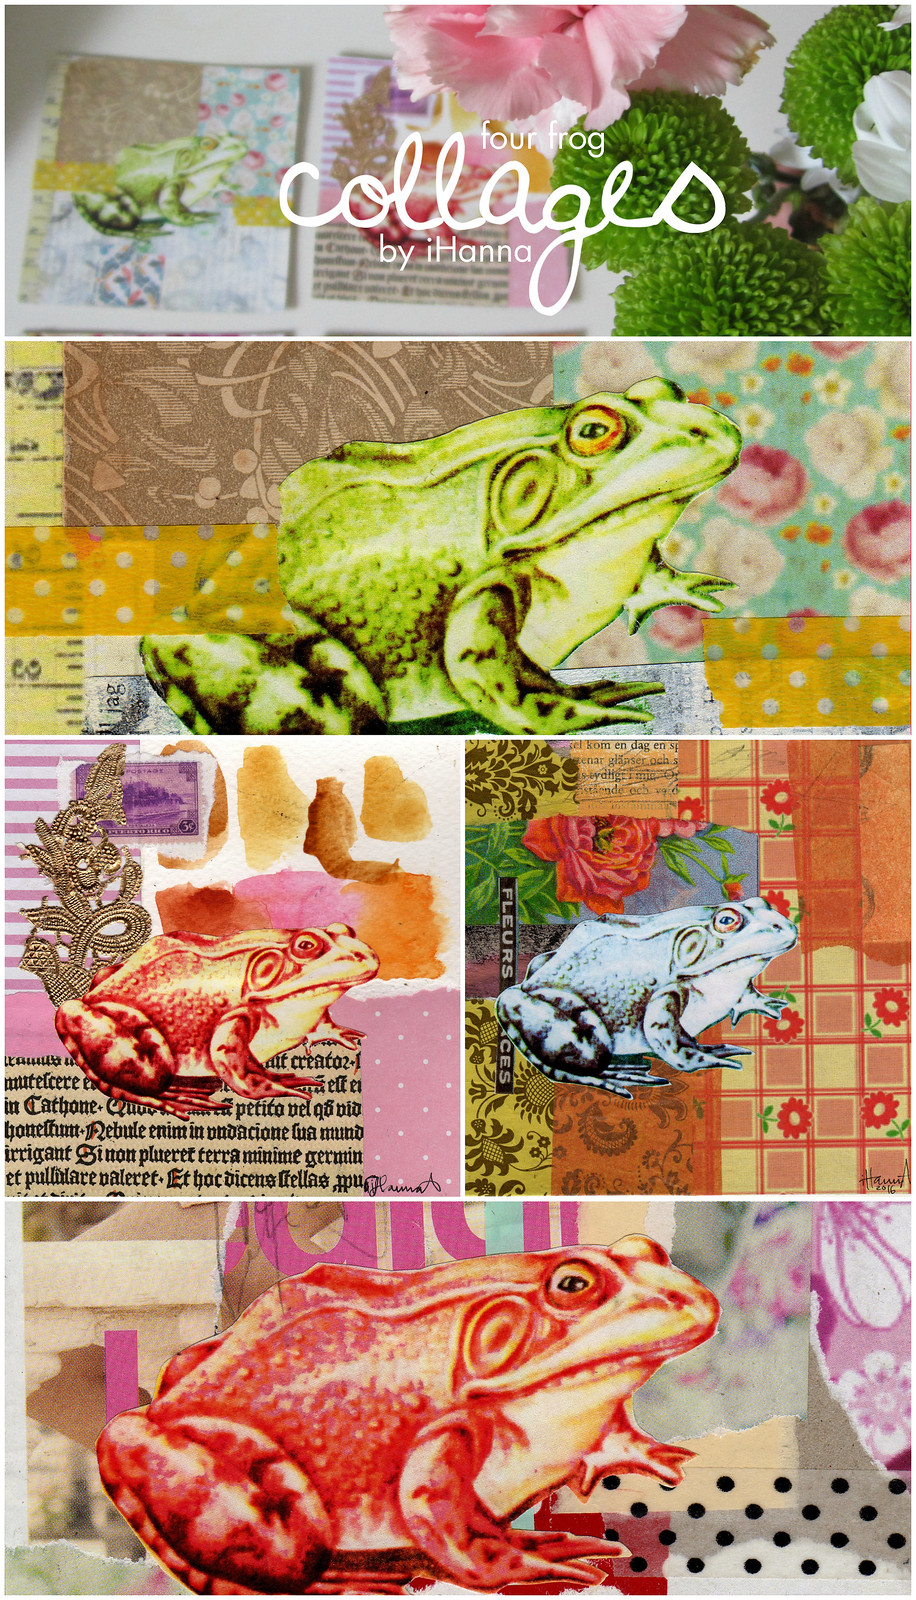 A series of frog collages